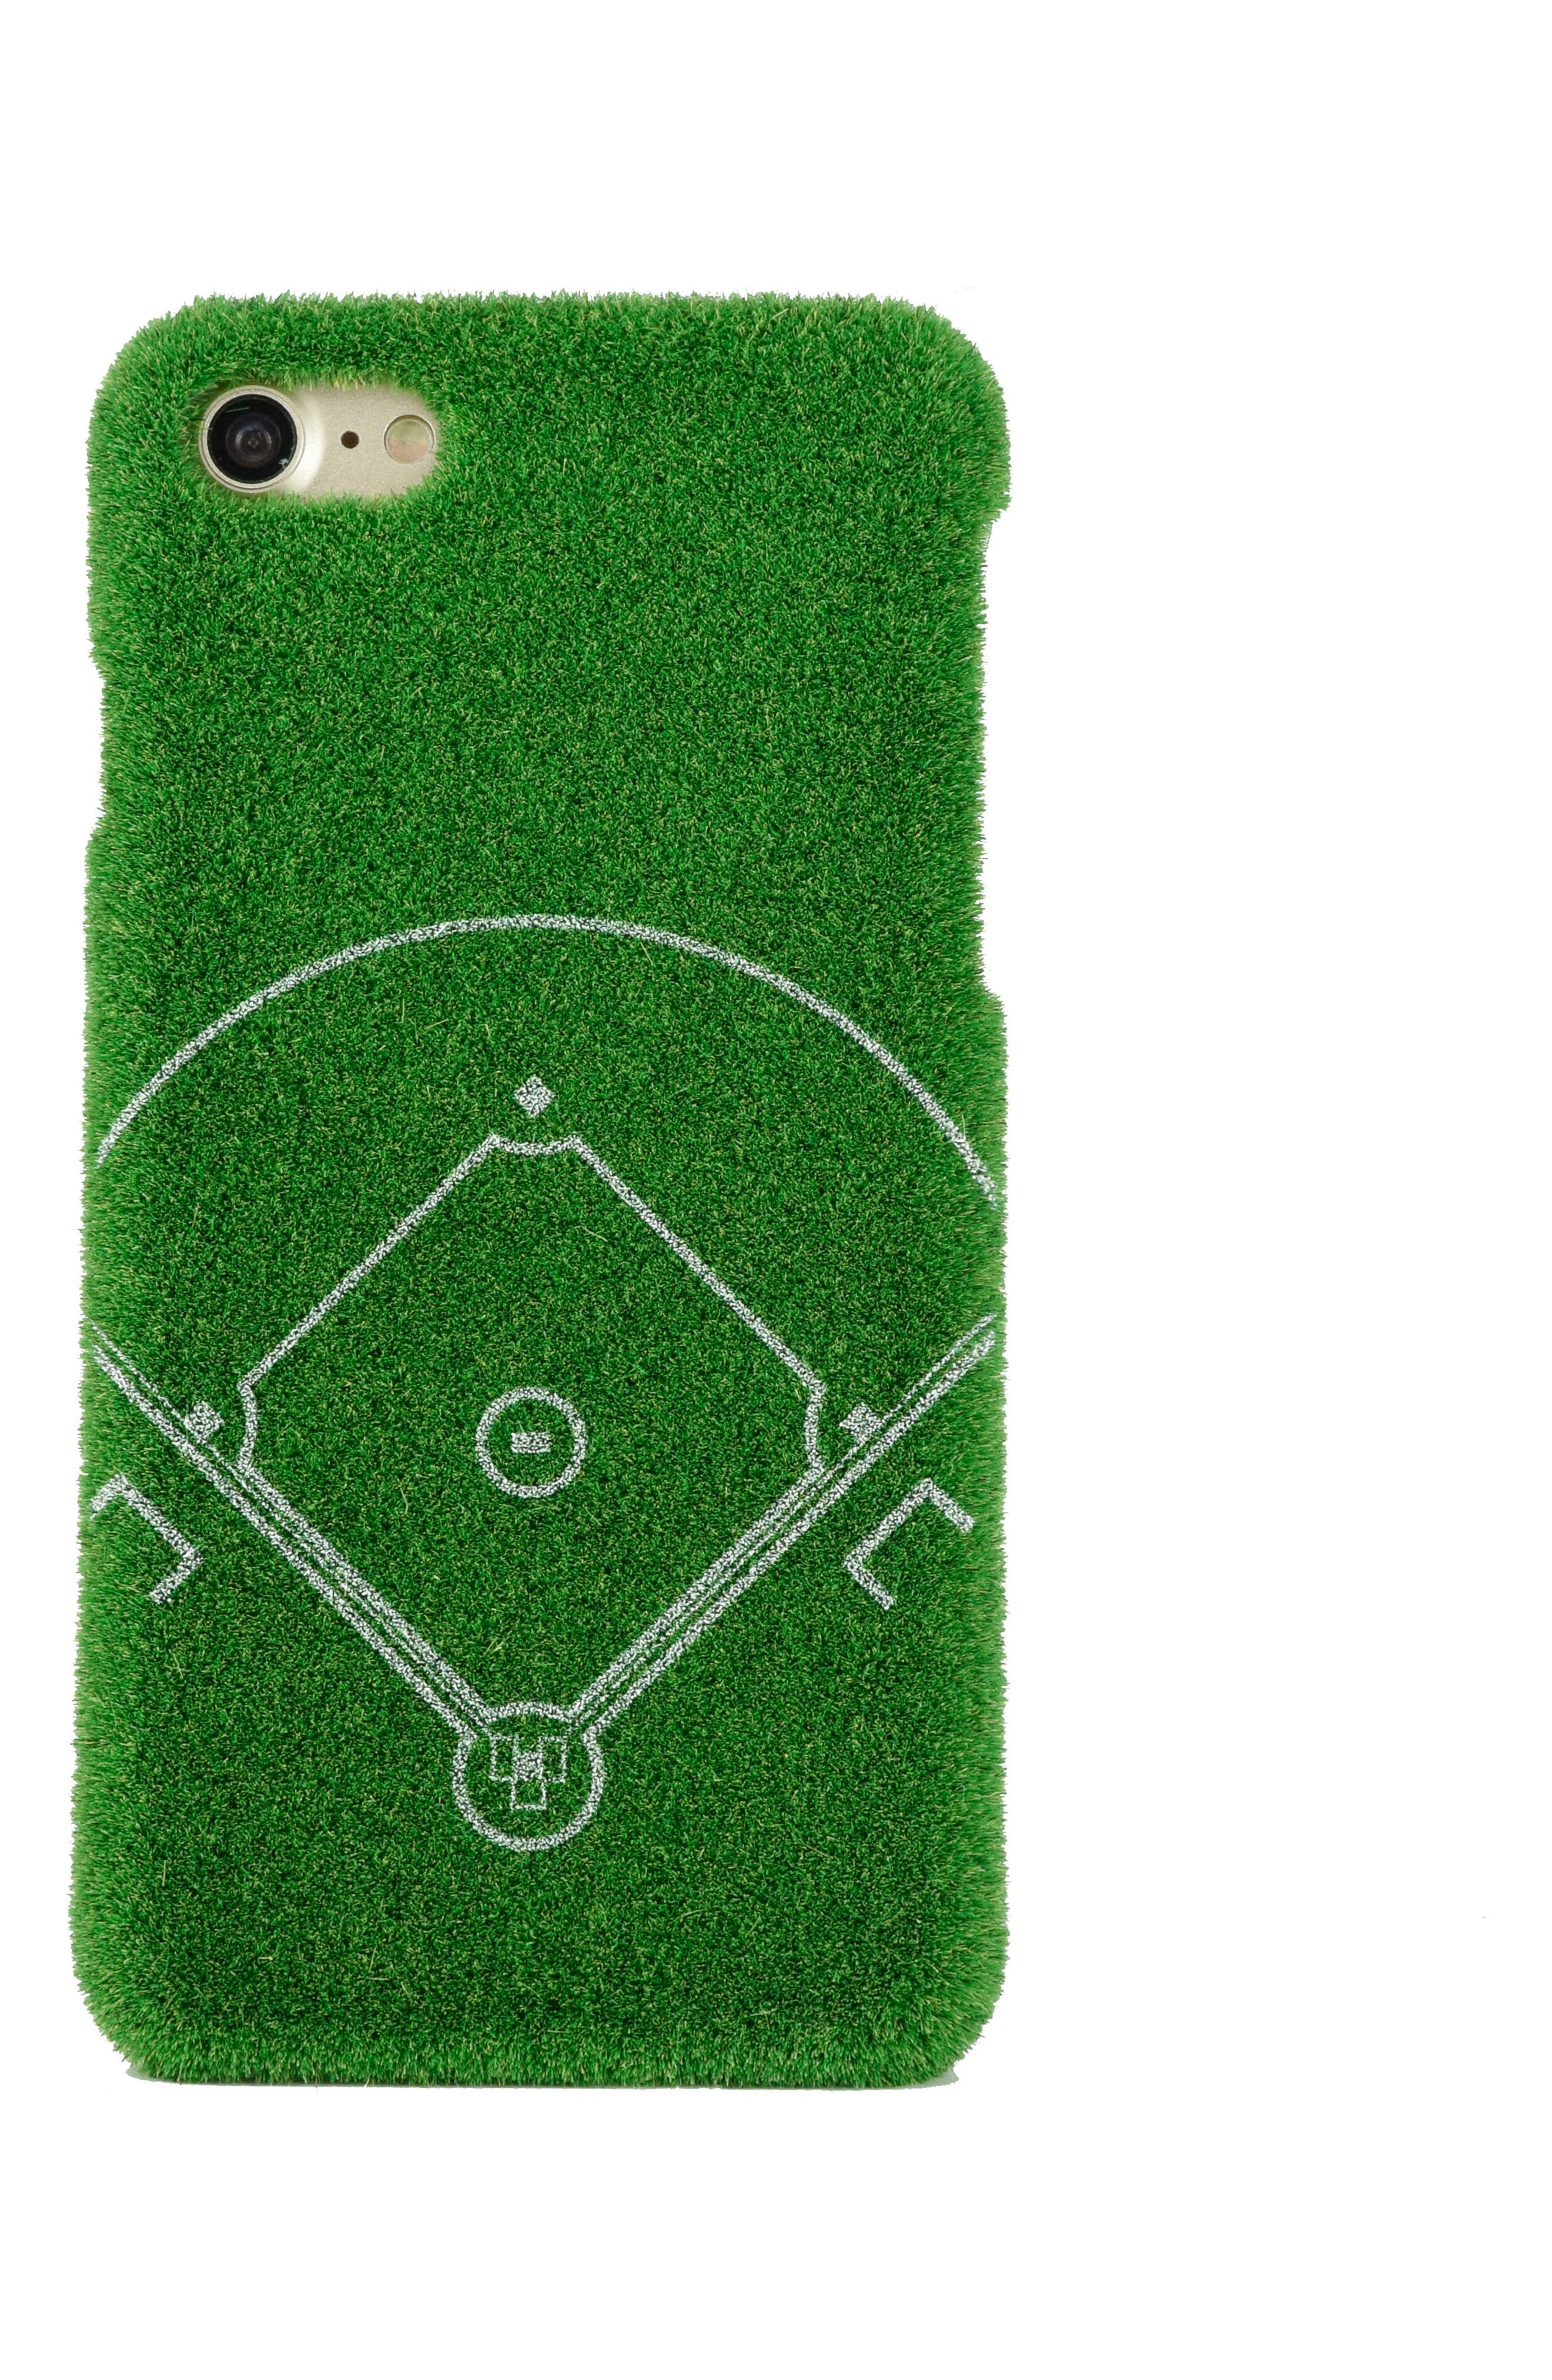 Shibaful Dream Field Portable Park iPhone 7 & iPhone 7 Plus Case